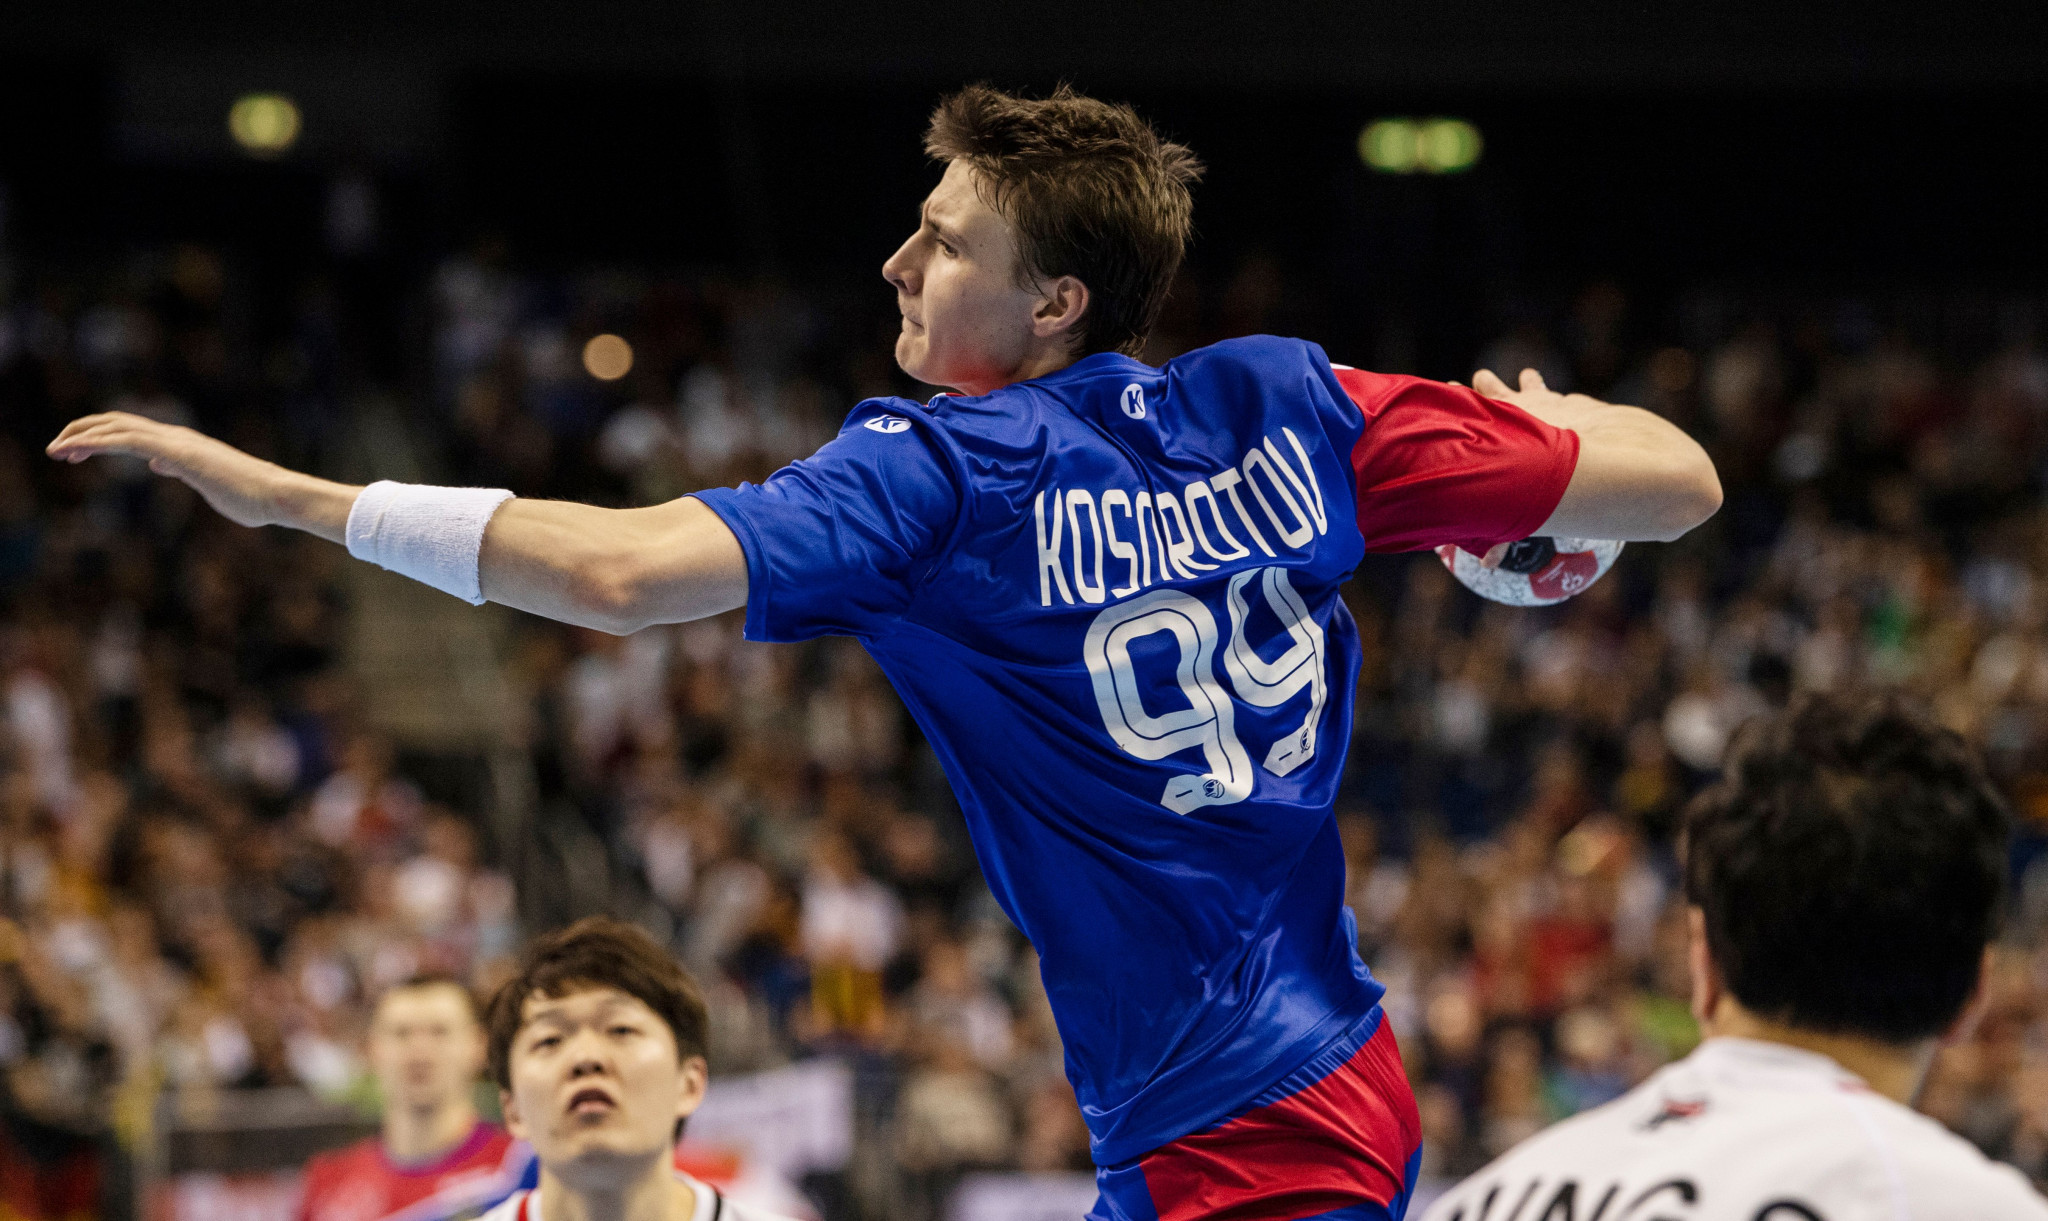 Russia placed 14th at the 2019 IHF Men's World Championship ©Getty Images